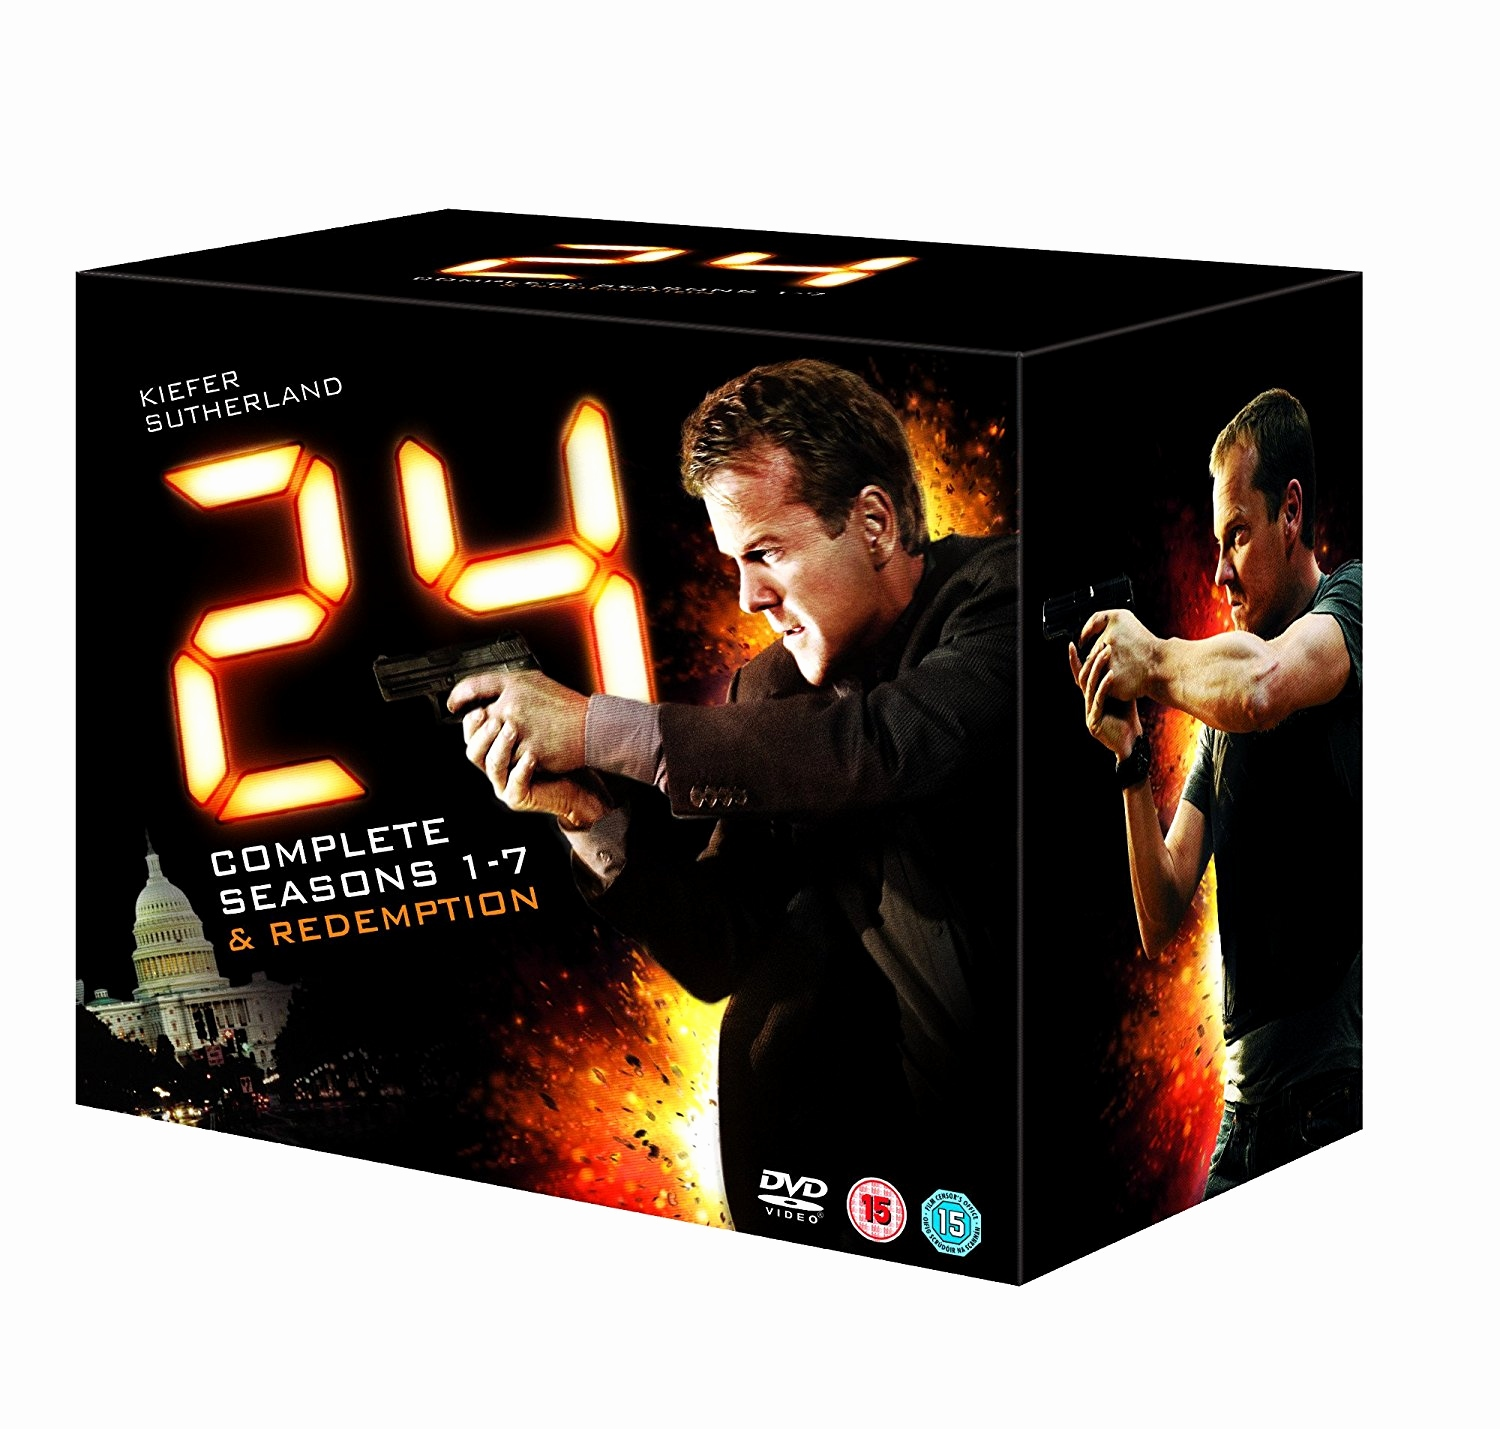 jack bauer birthday card ; 24-jack-bauer-birthday-card-fresh-24-season-1-7-plus-redemption-dvd-amazon-kiefer-of-24-jack-bauer-birthday-card